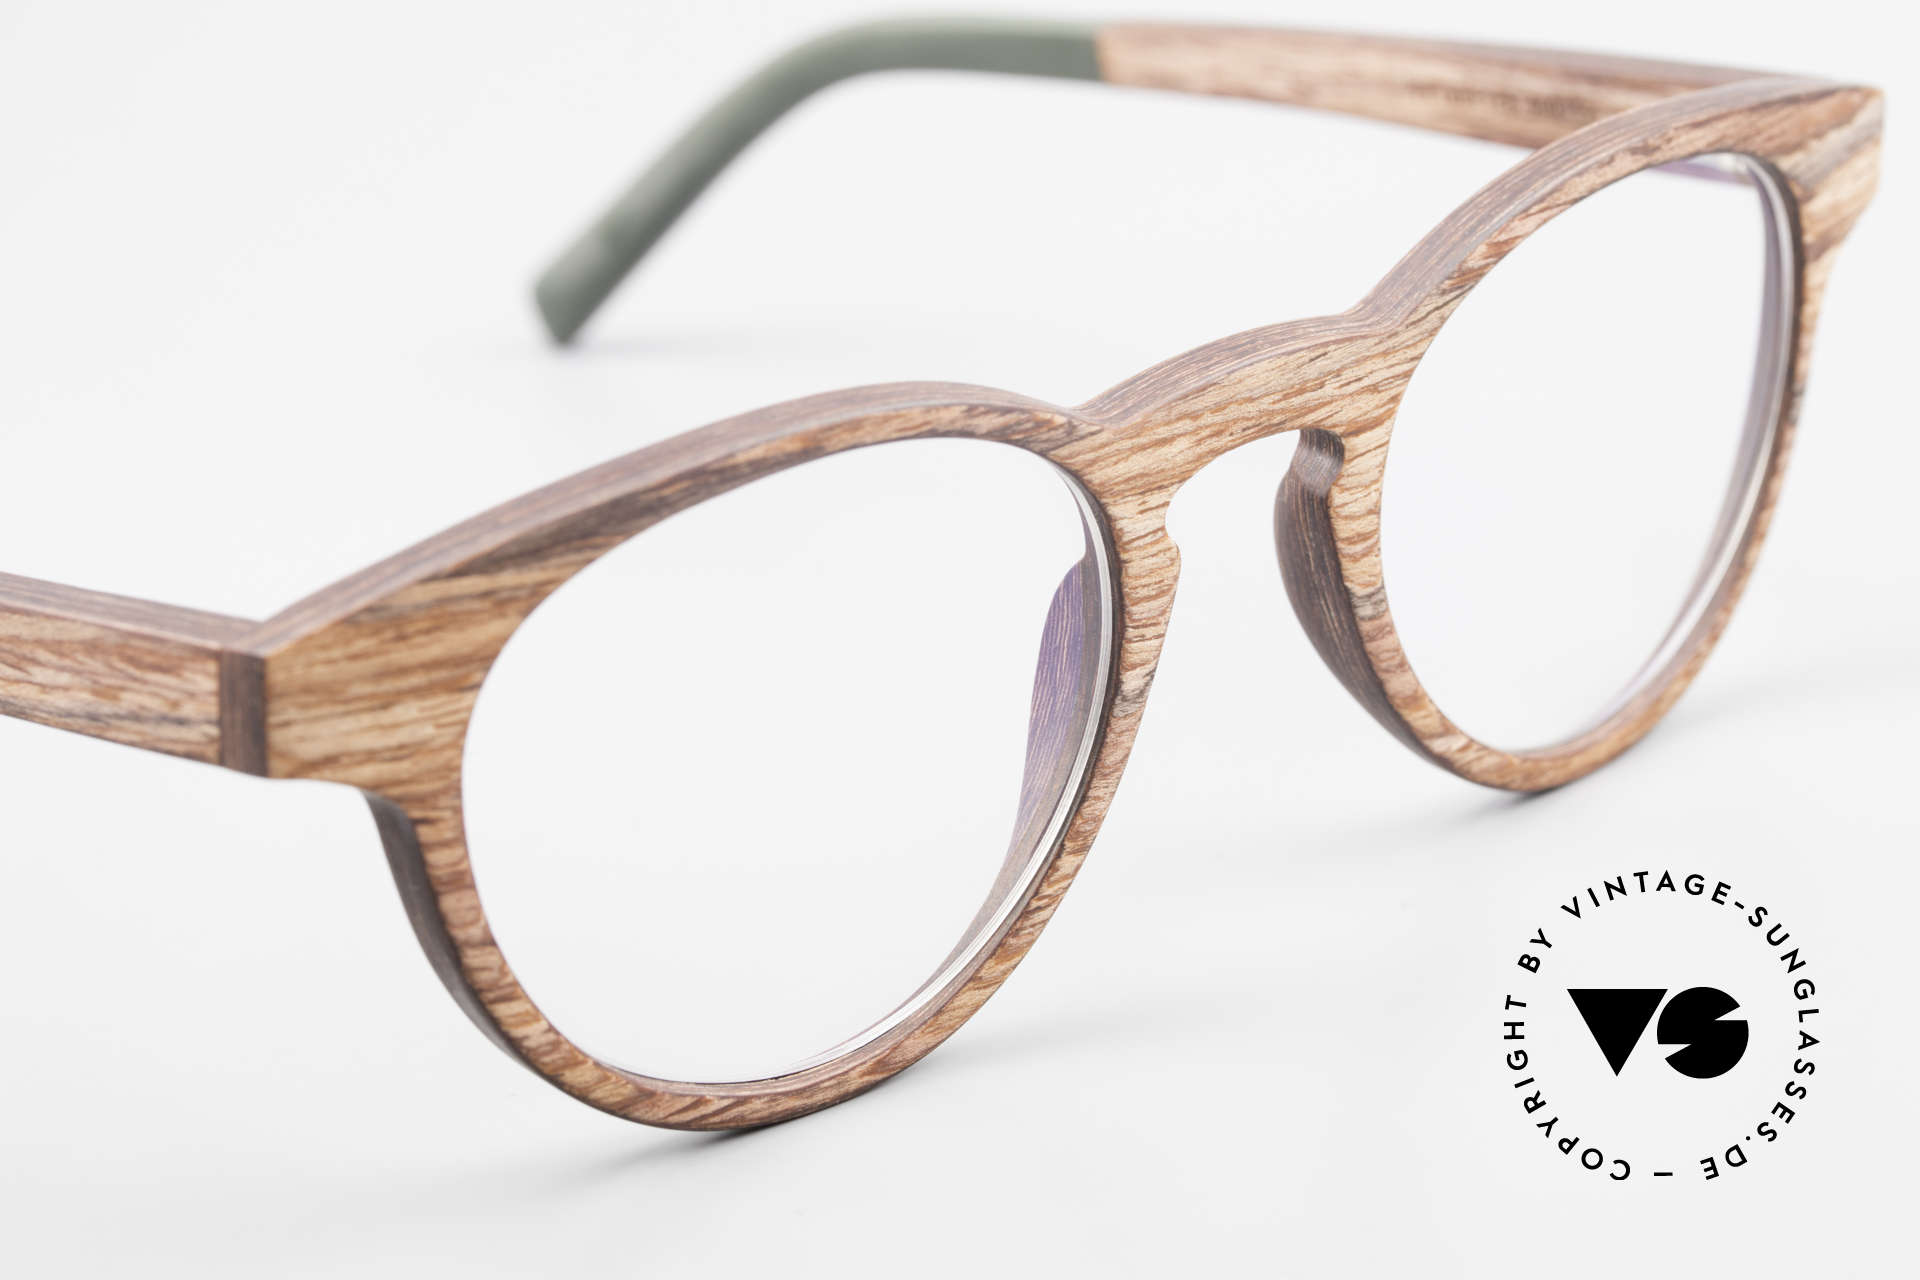 Kerbholz Friedrich Wood Glasses Panto Rosewood, unworn pair with flexible spring hinges (1. class fit), Made for Men and Women